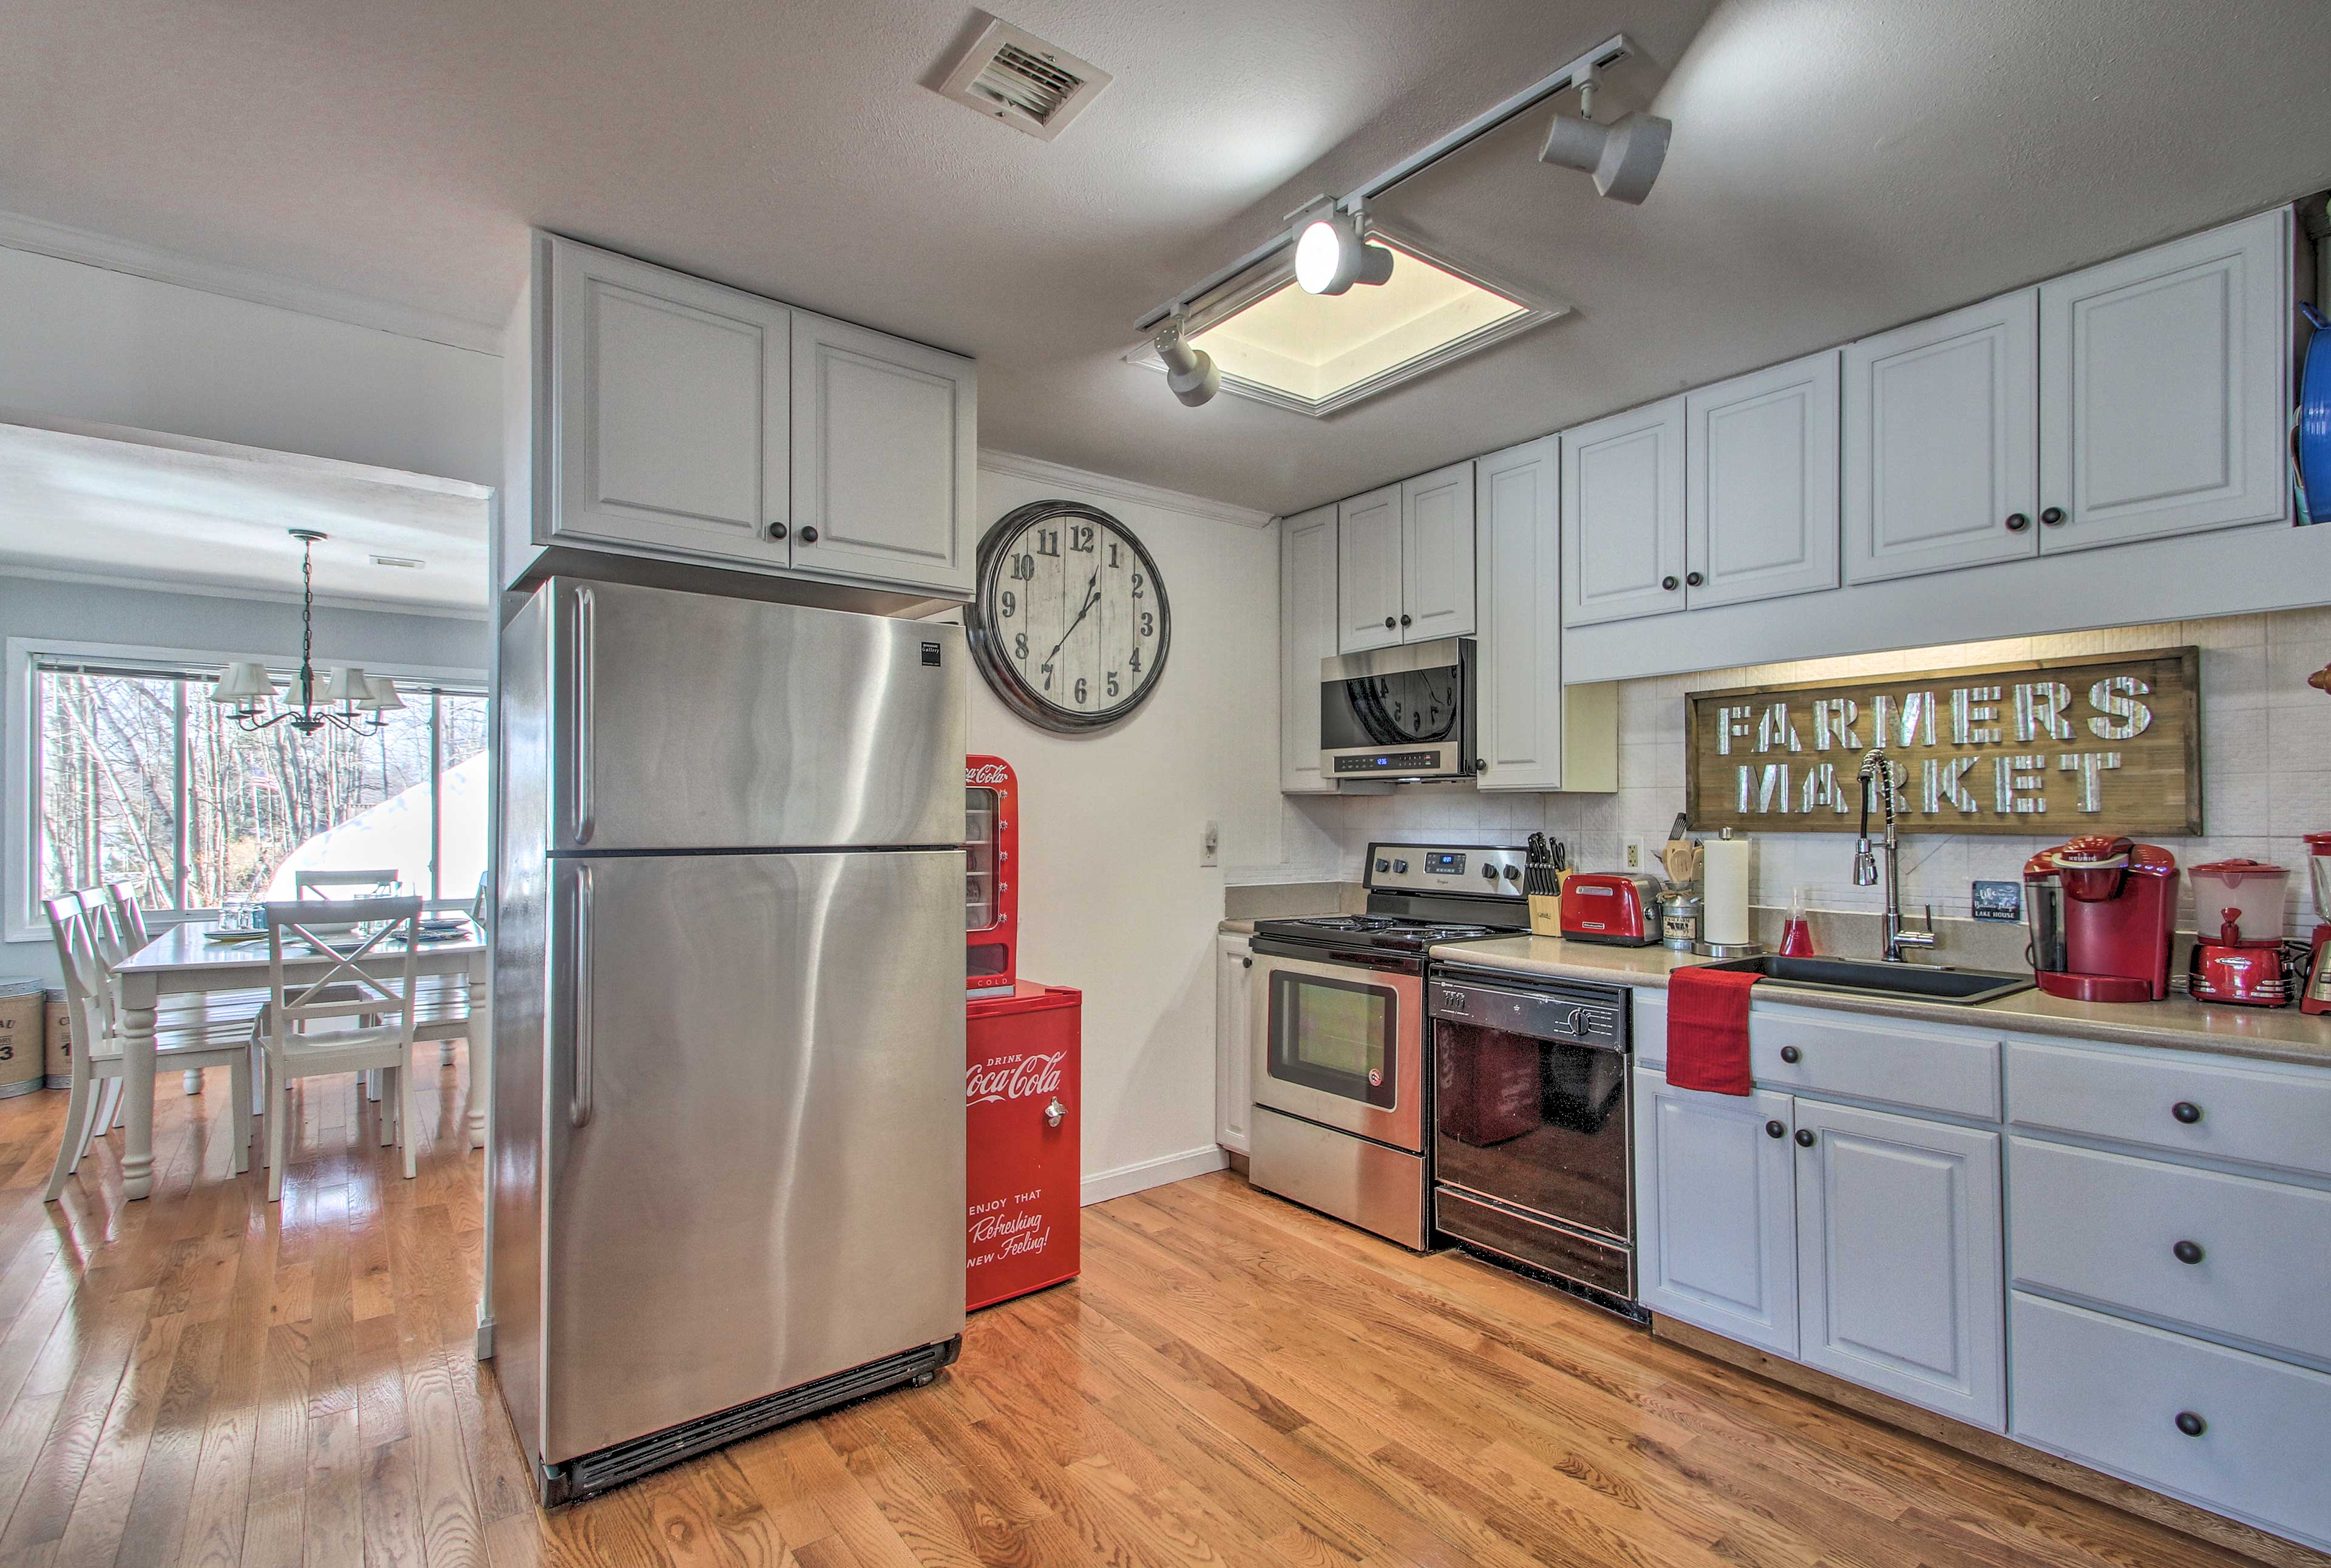 Stainless steel appliances highlight this fully equipped kitchen.